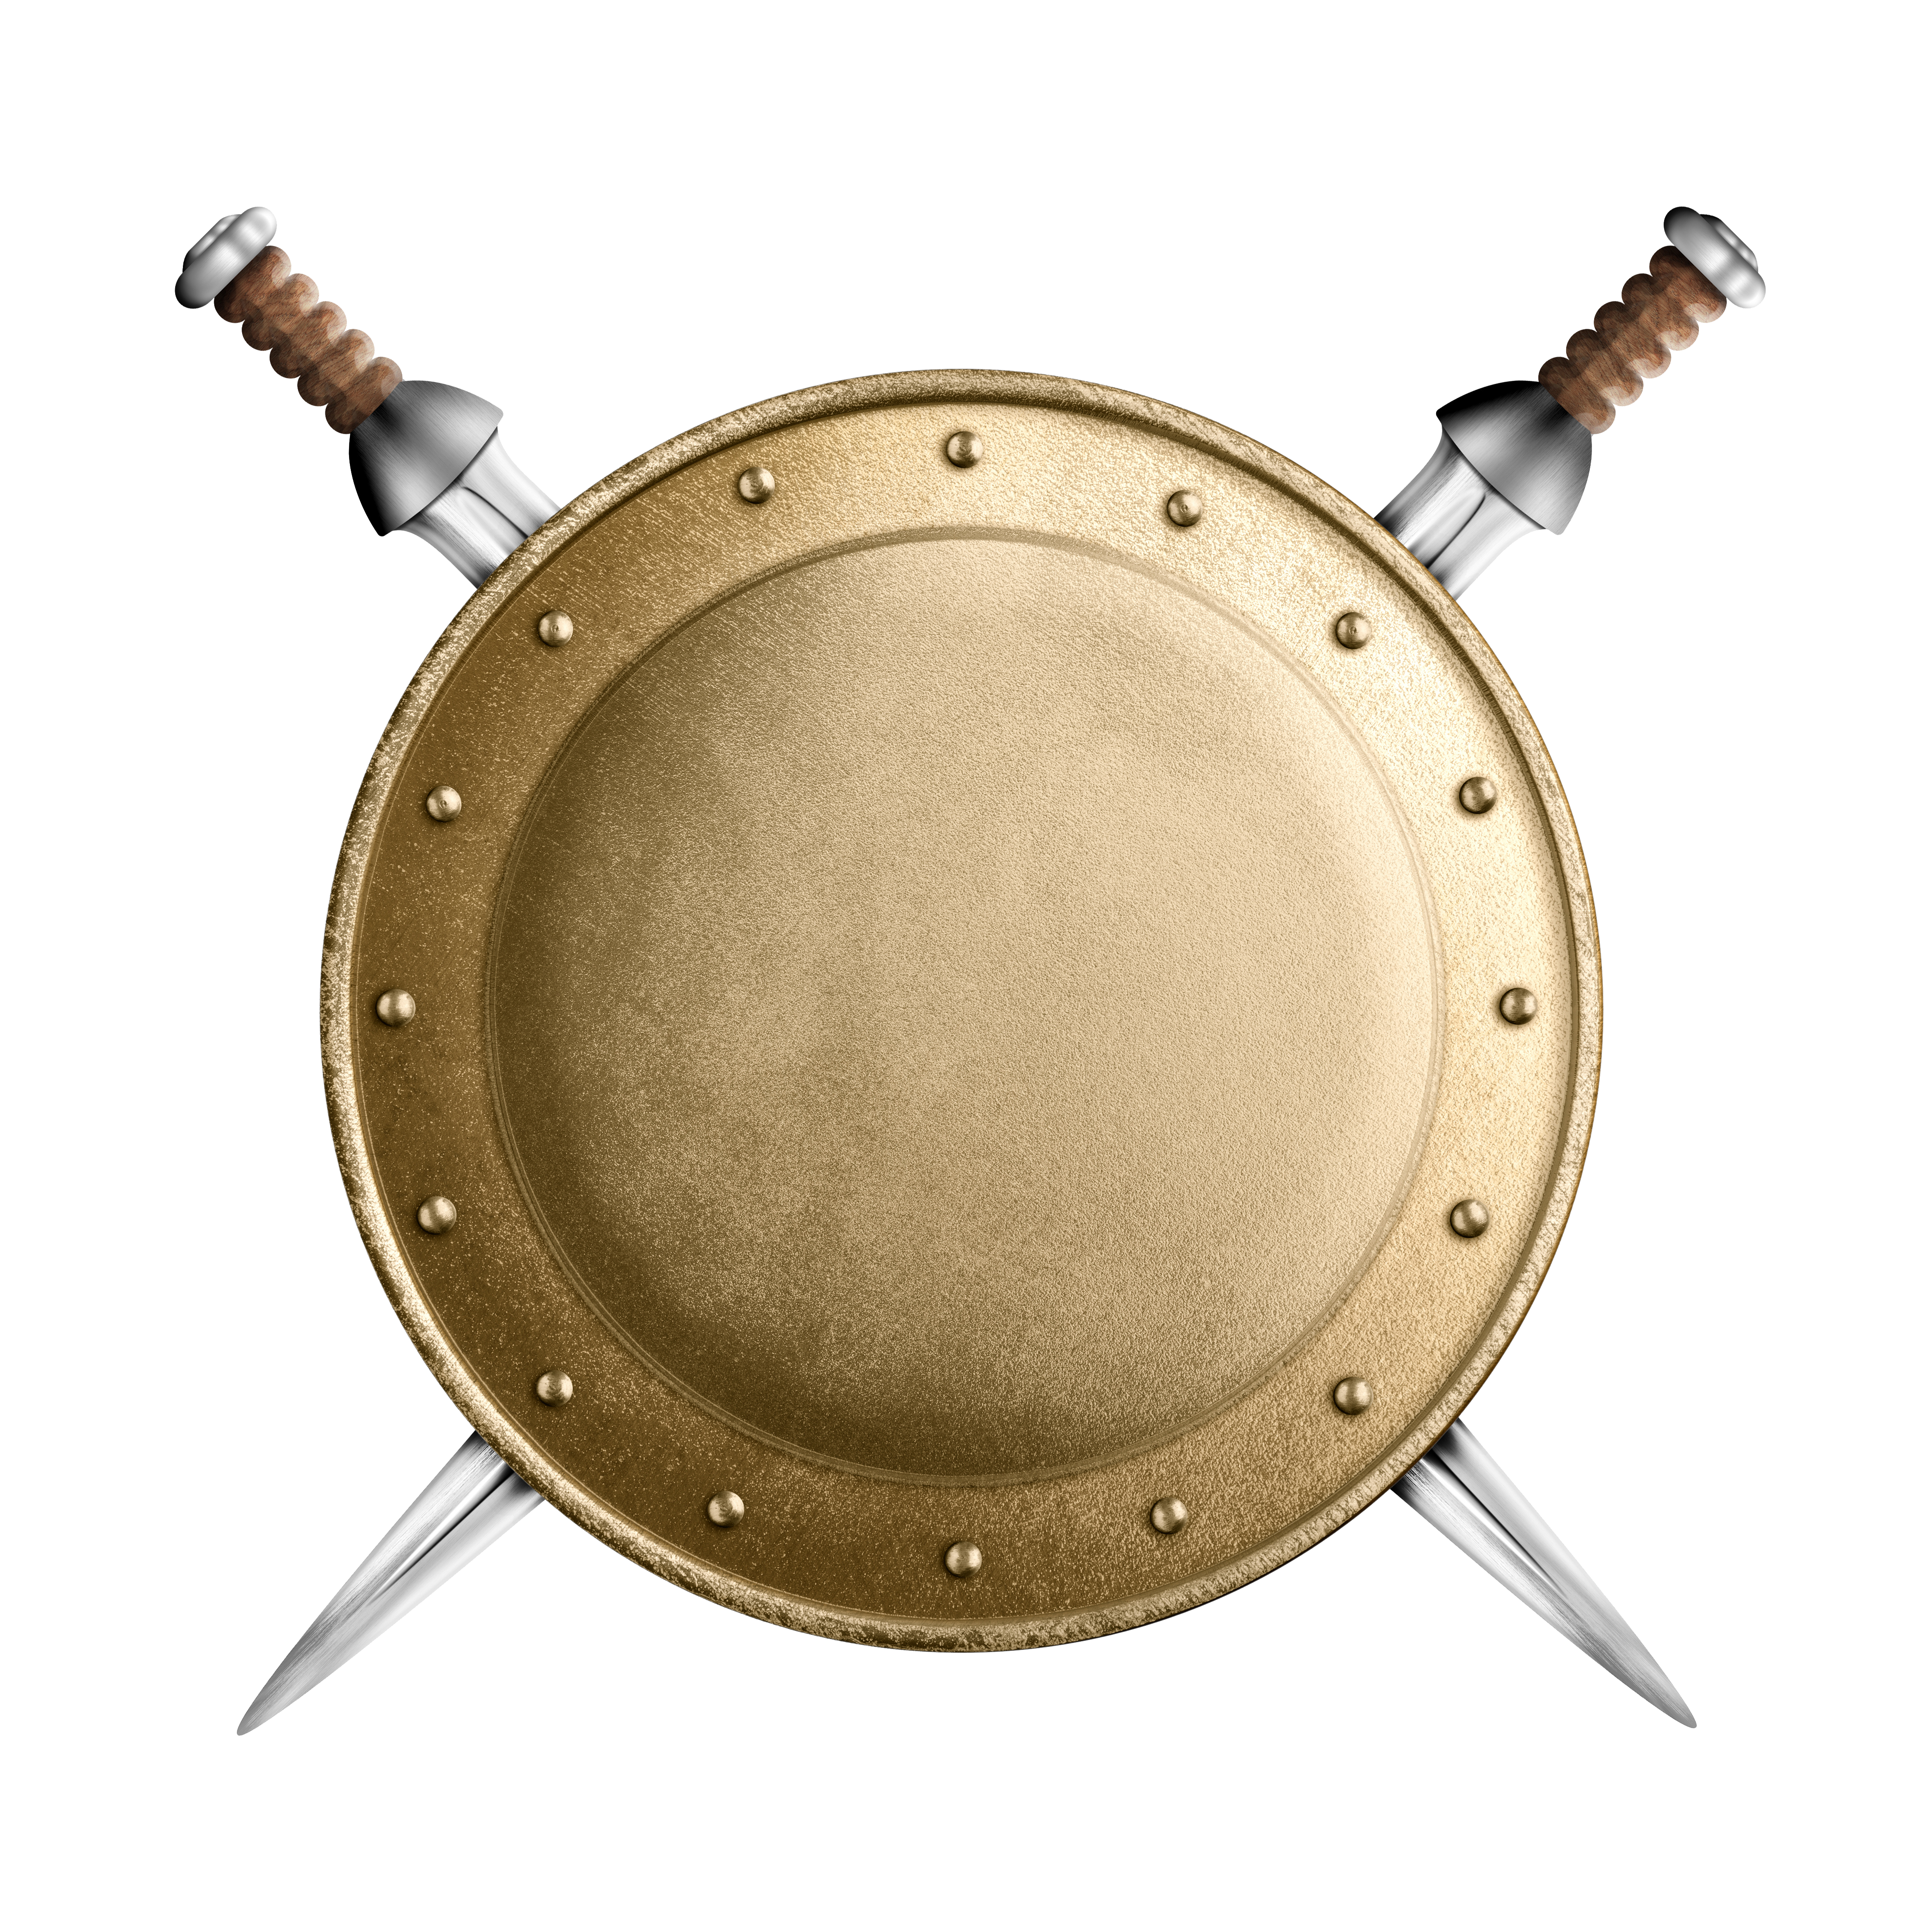 Shield and swords png. Round stock photography illustration